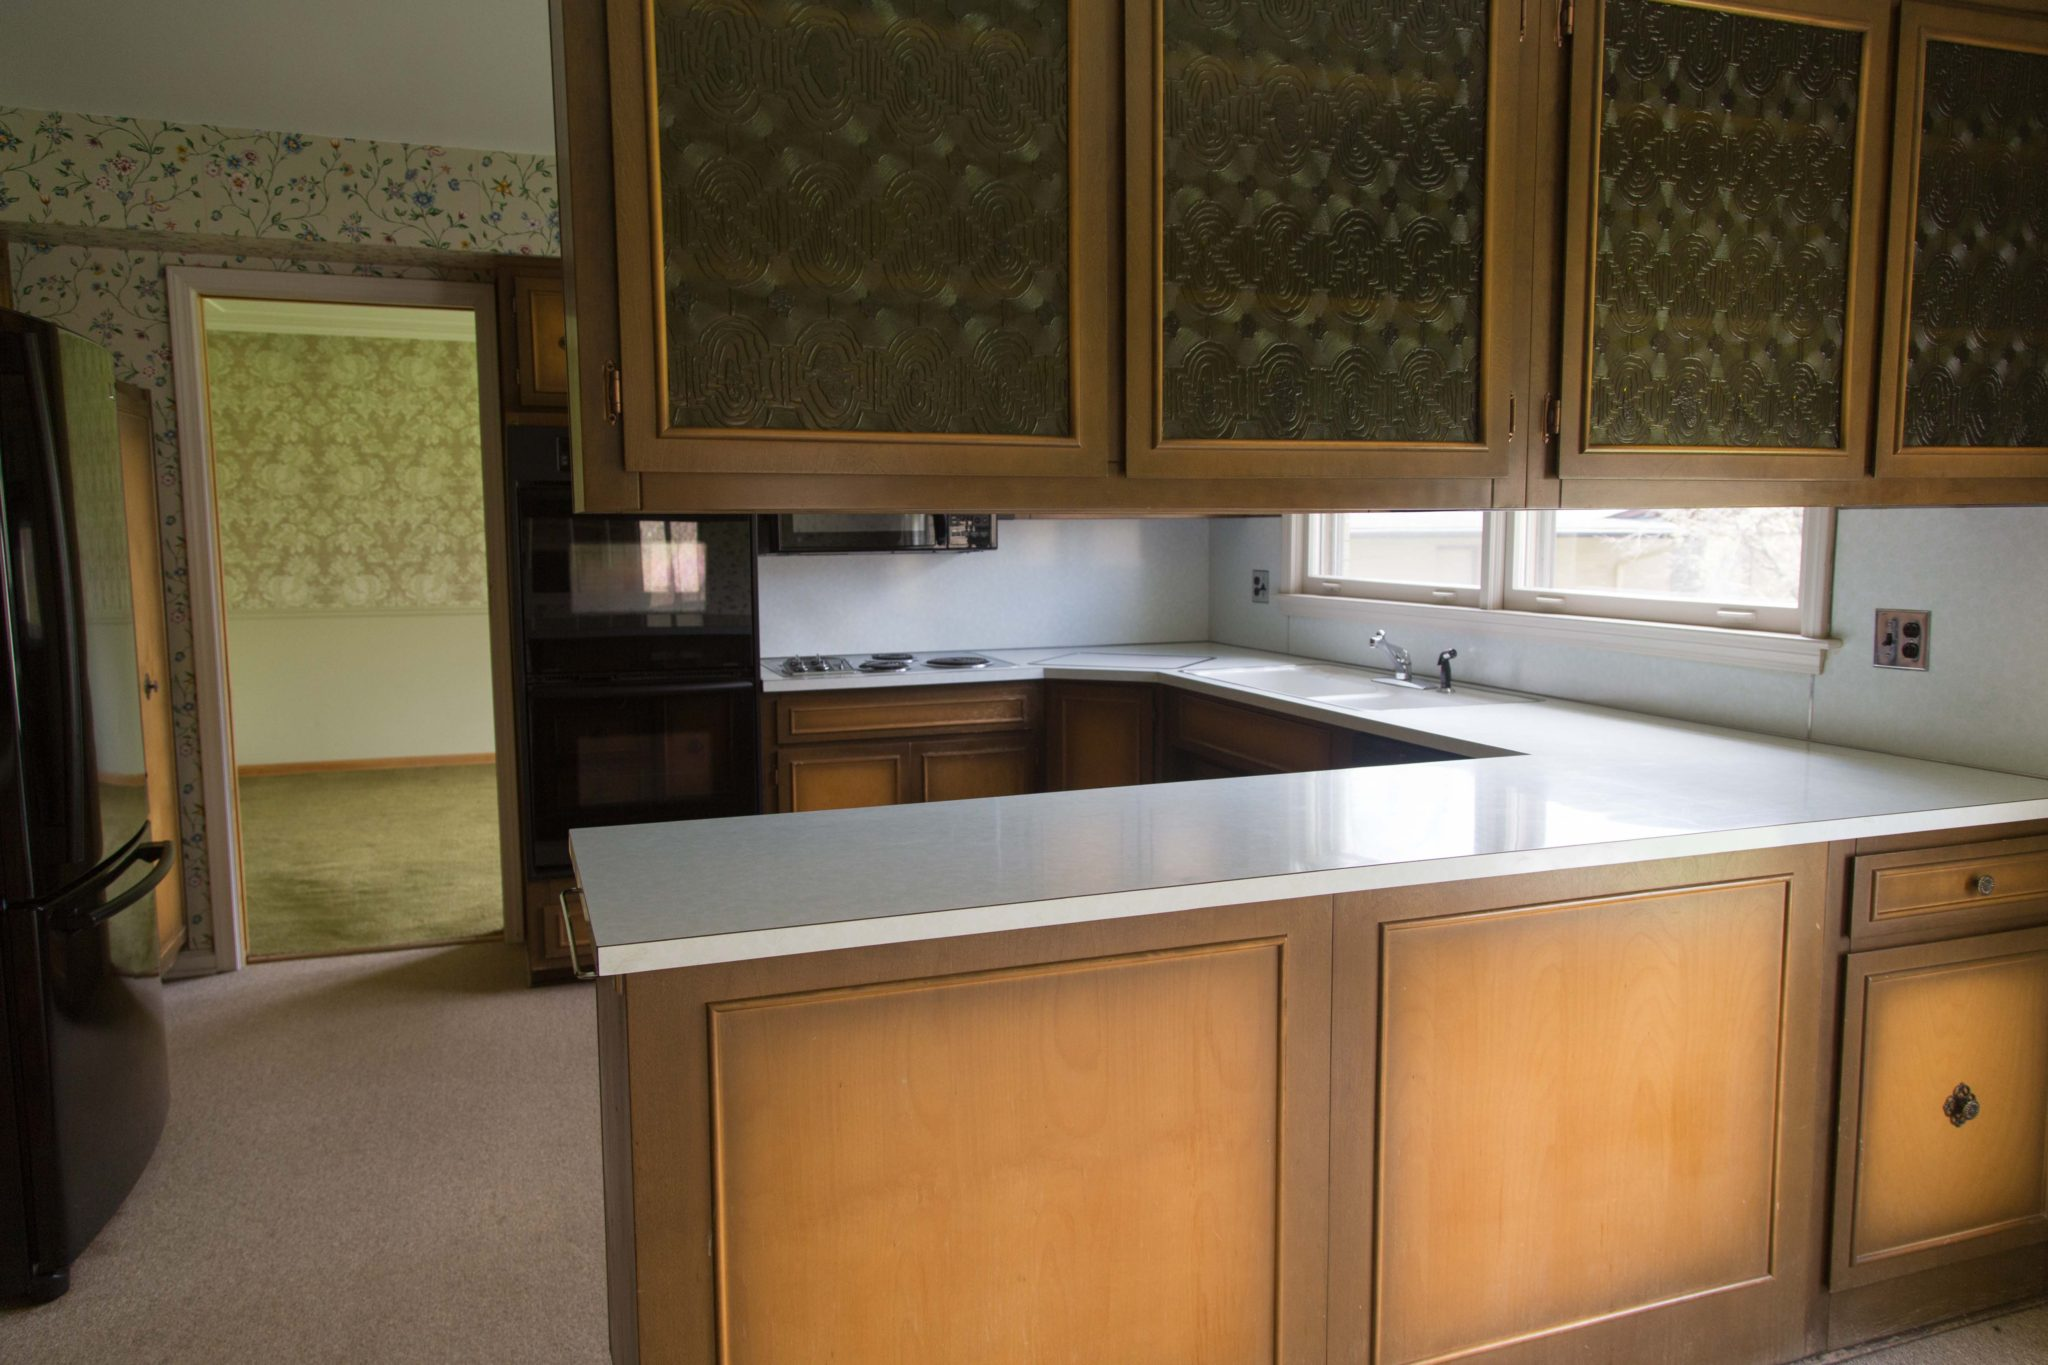 midcentury modern kitchen renovation | our kitchen before | fixer upper | our new kitchen on allweareblog.com